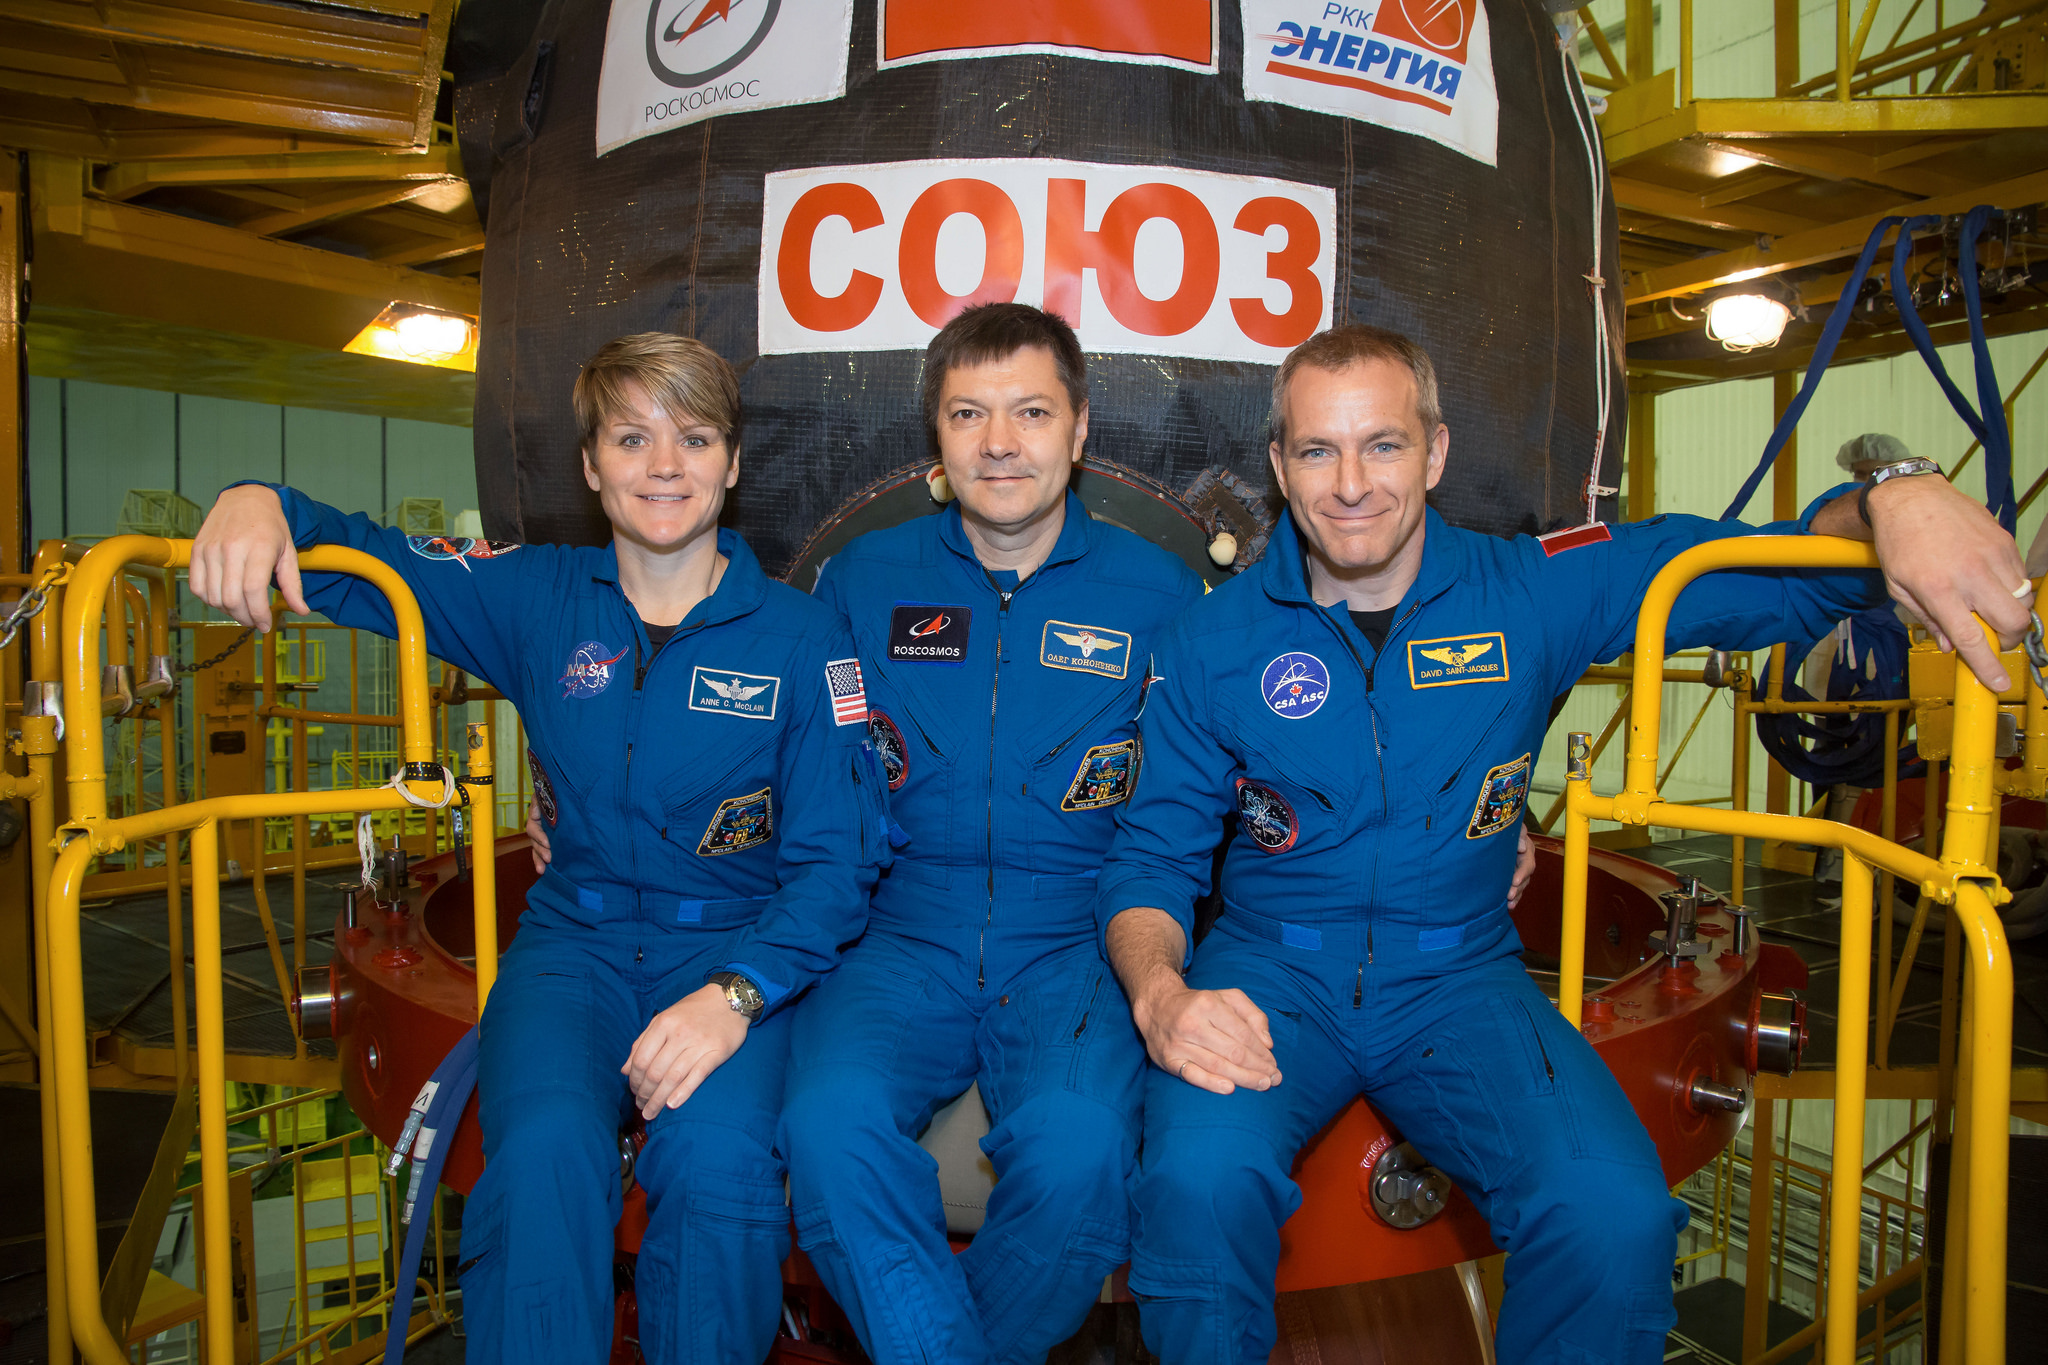 In the Integration Facility at the Baikonur Cosmodrome in Kazakhstan, Expedition 58 crew members Anne McClain of NASA (left), Oleg Kononenko of Roscosmos (center) and David Saint-Jacques of the Canadian Space Agency (right) pose for pictures Nov. 20 in front of their Soyuz MS-11 spacecraft during a vehicle fit check. They will launch Dec. 3 on the Soyuz MS-11 spacecraft from the Baikonur Cosmodrome for a six-and-a-half month mission on the International Space Station